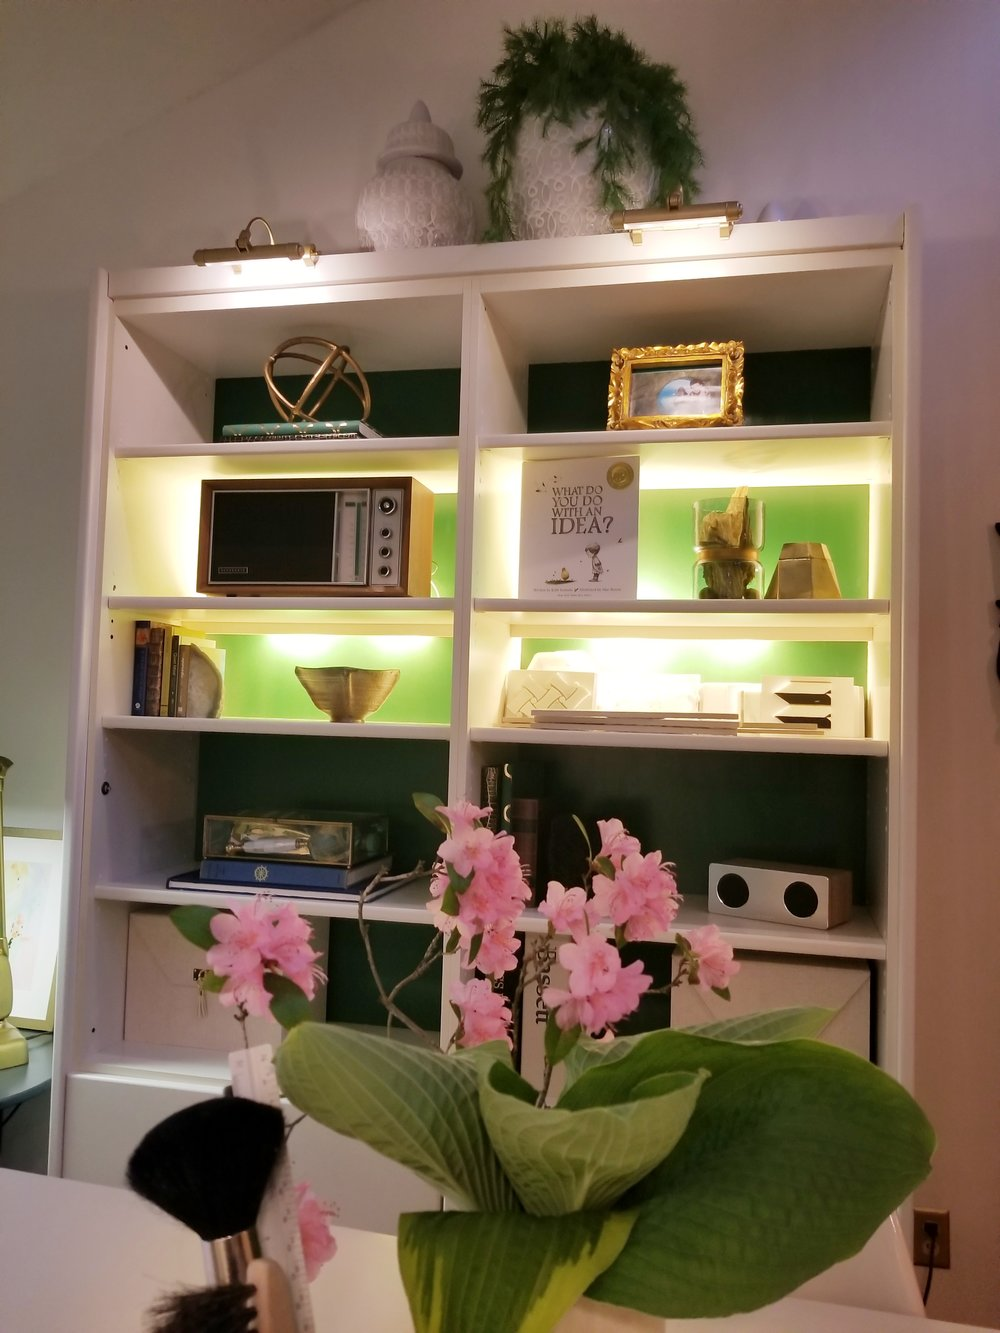 The bookcases were given a coat of green lacquer paint, just like the low bookcases on the other side.